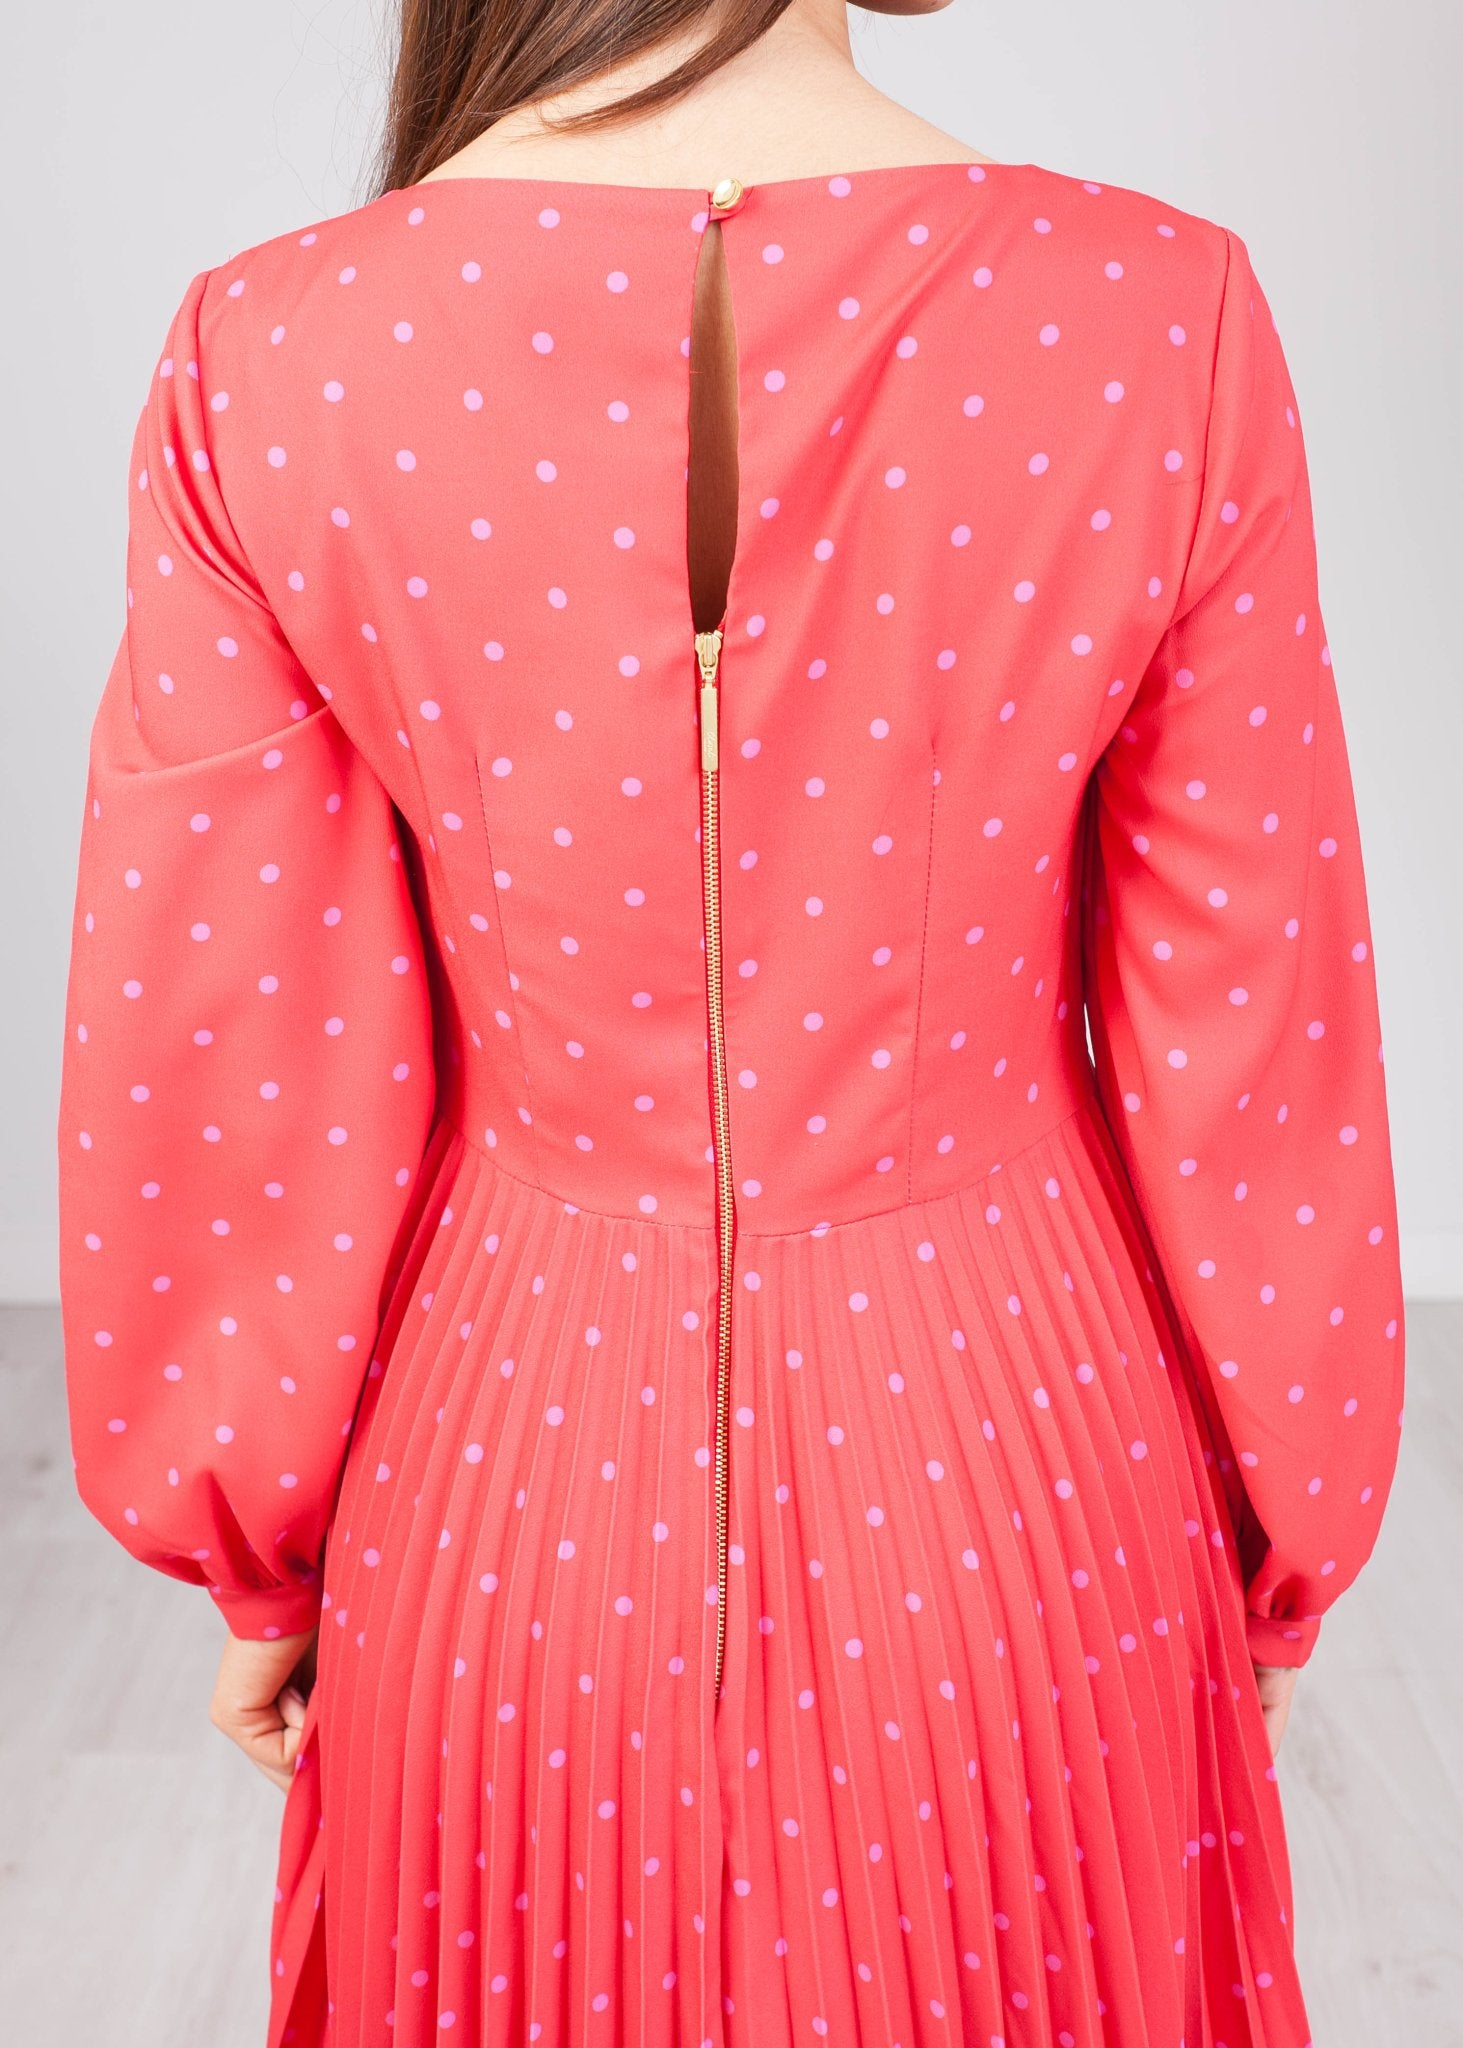 Cara Red Polka Dot Dress - The Walk in Wardrobe